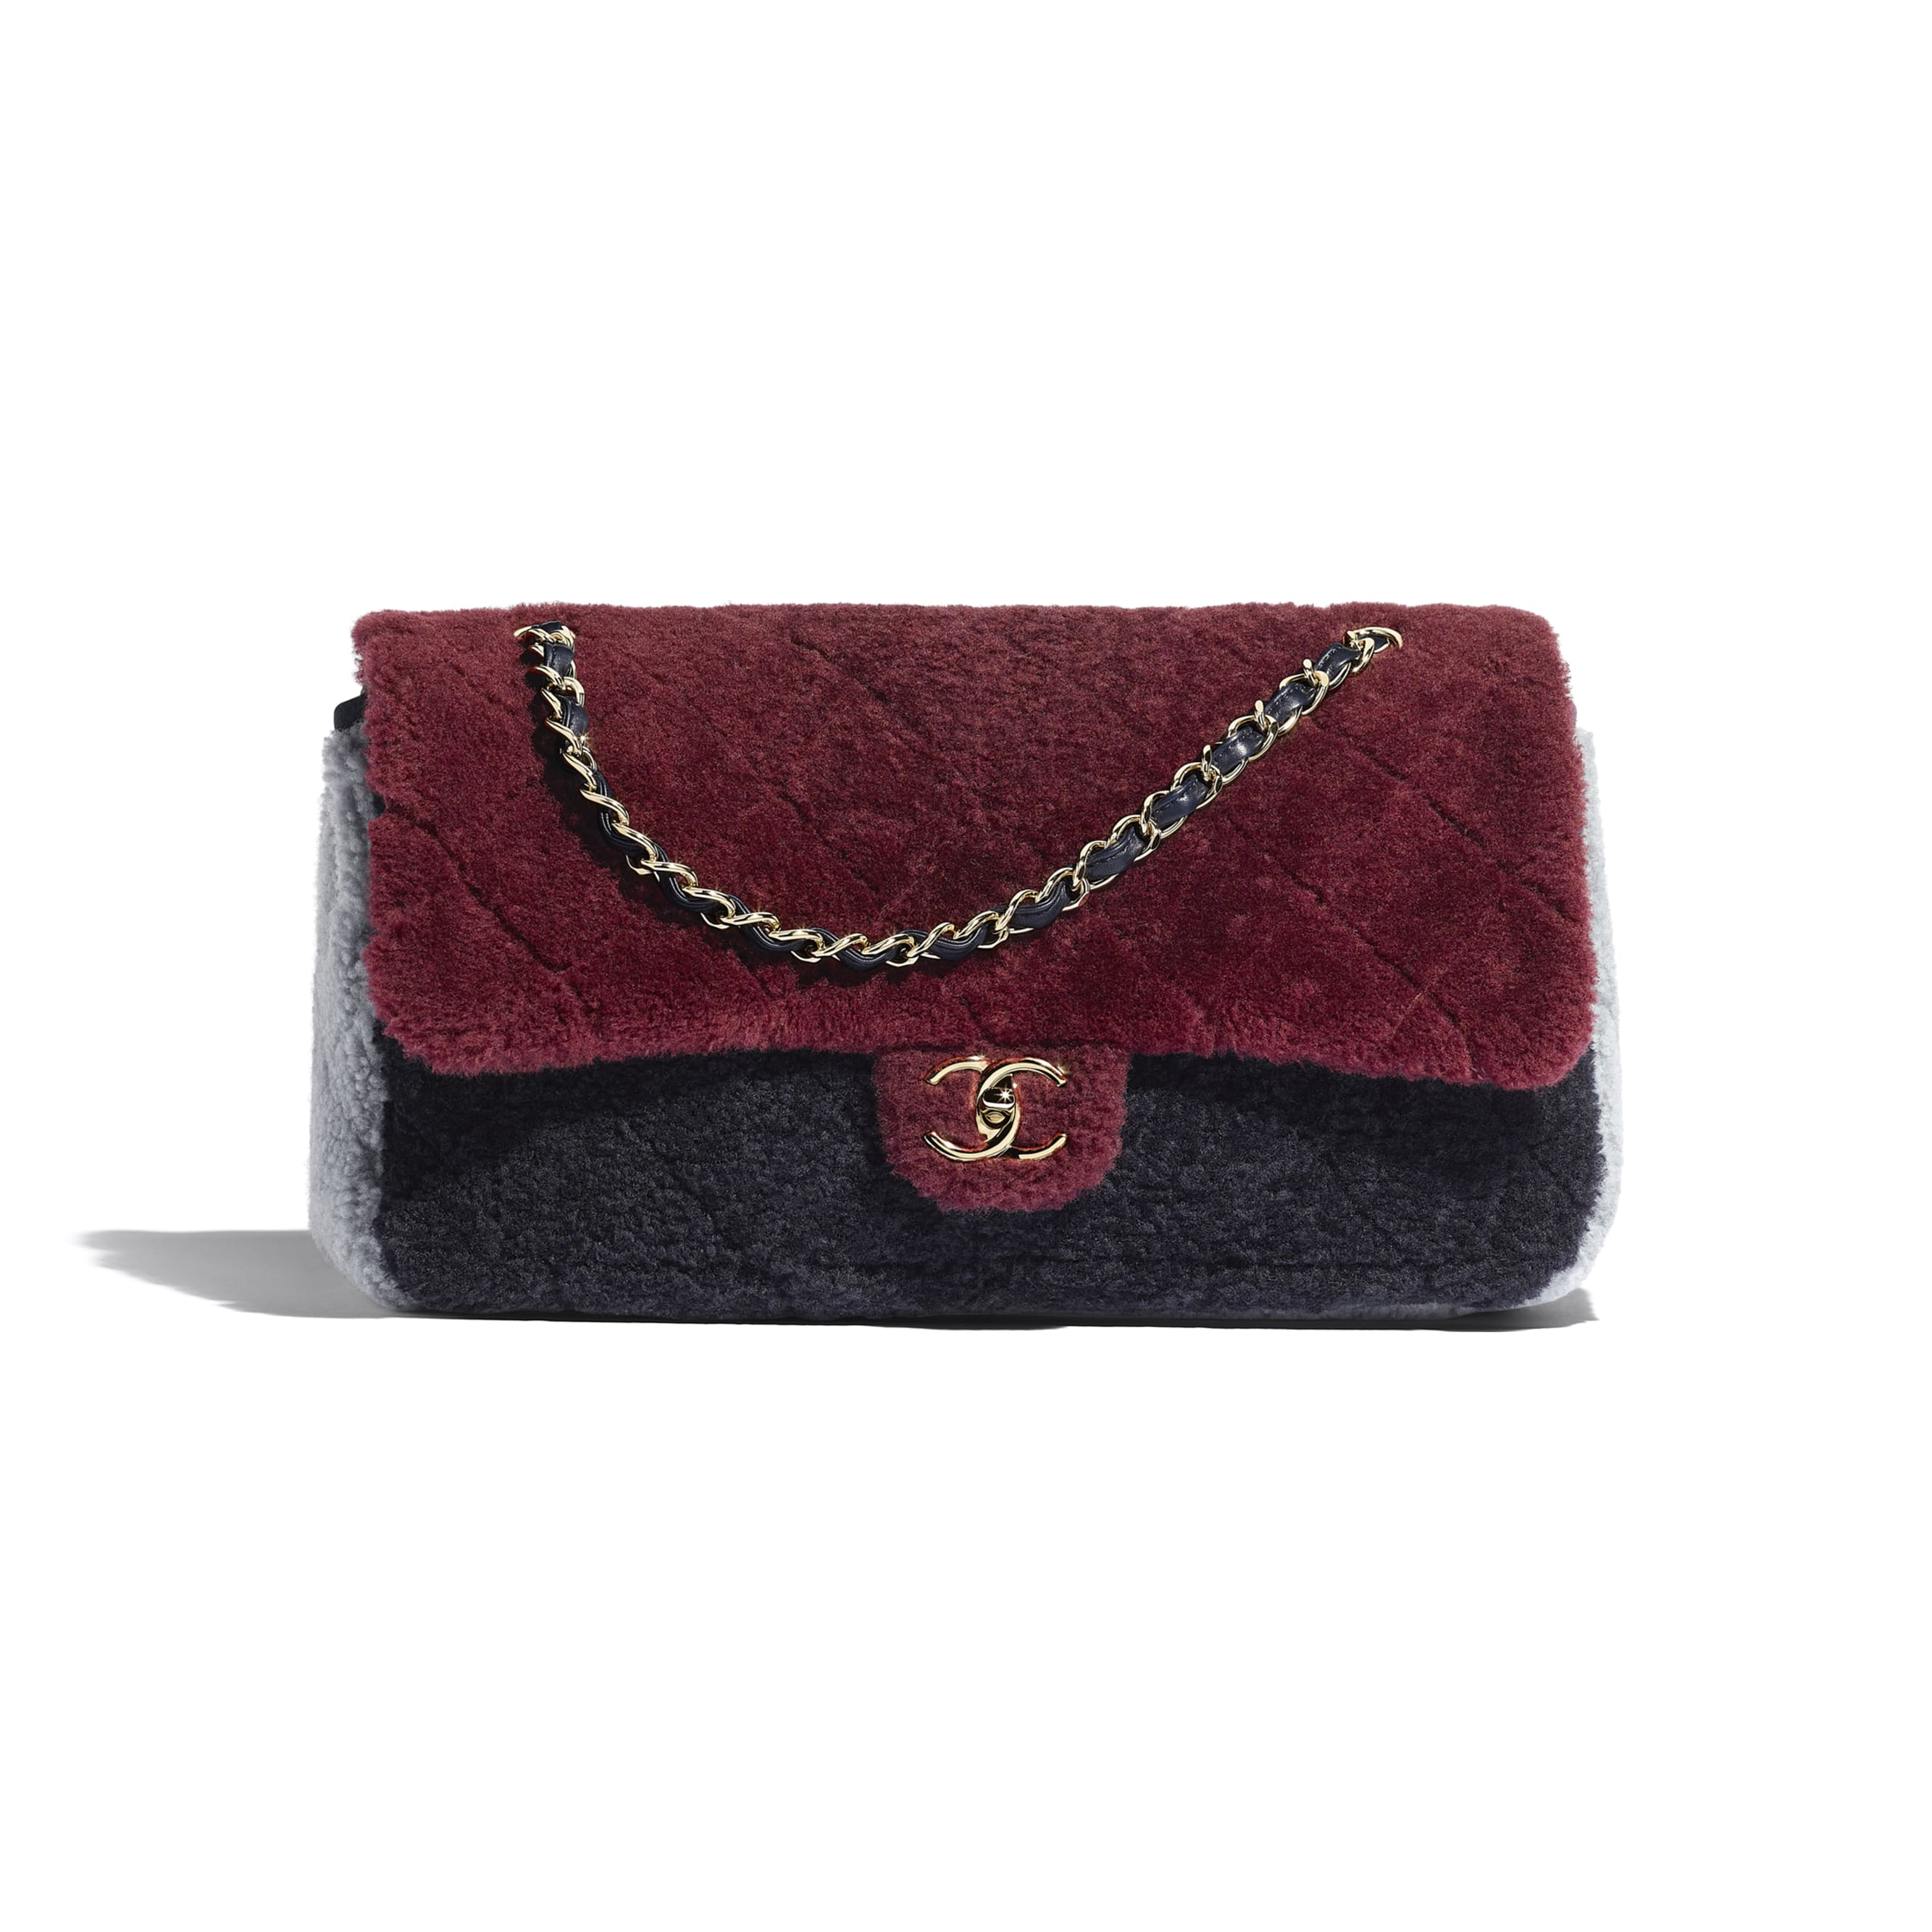 Flap Bag - Burgundy, Navy Blue & Gray - Shearling Sheepskin & Gold-Tone Metal - Default view - see standard sized version